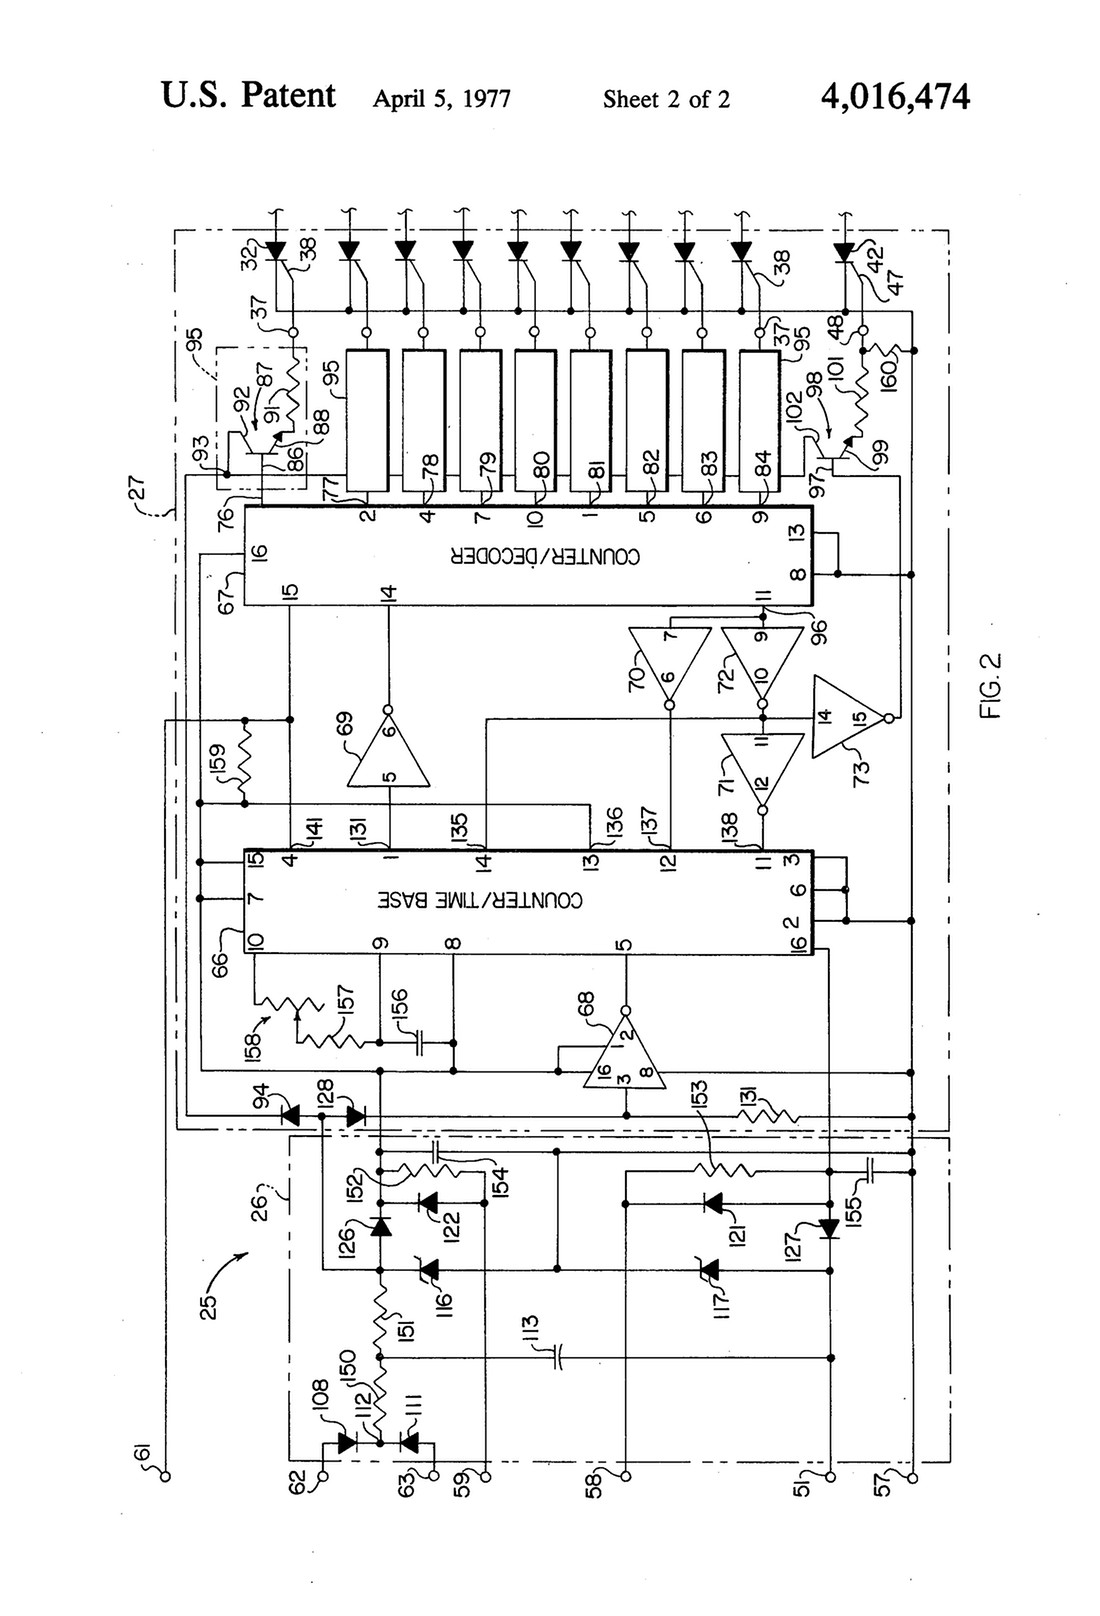 bostitch air compressor wiring diagram schauer battery charger wiring diagram - auto electrical ... curtis toledo air compressor wiring diagram #14